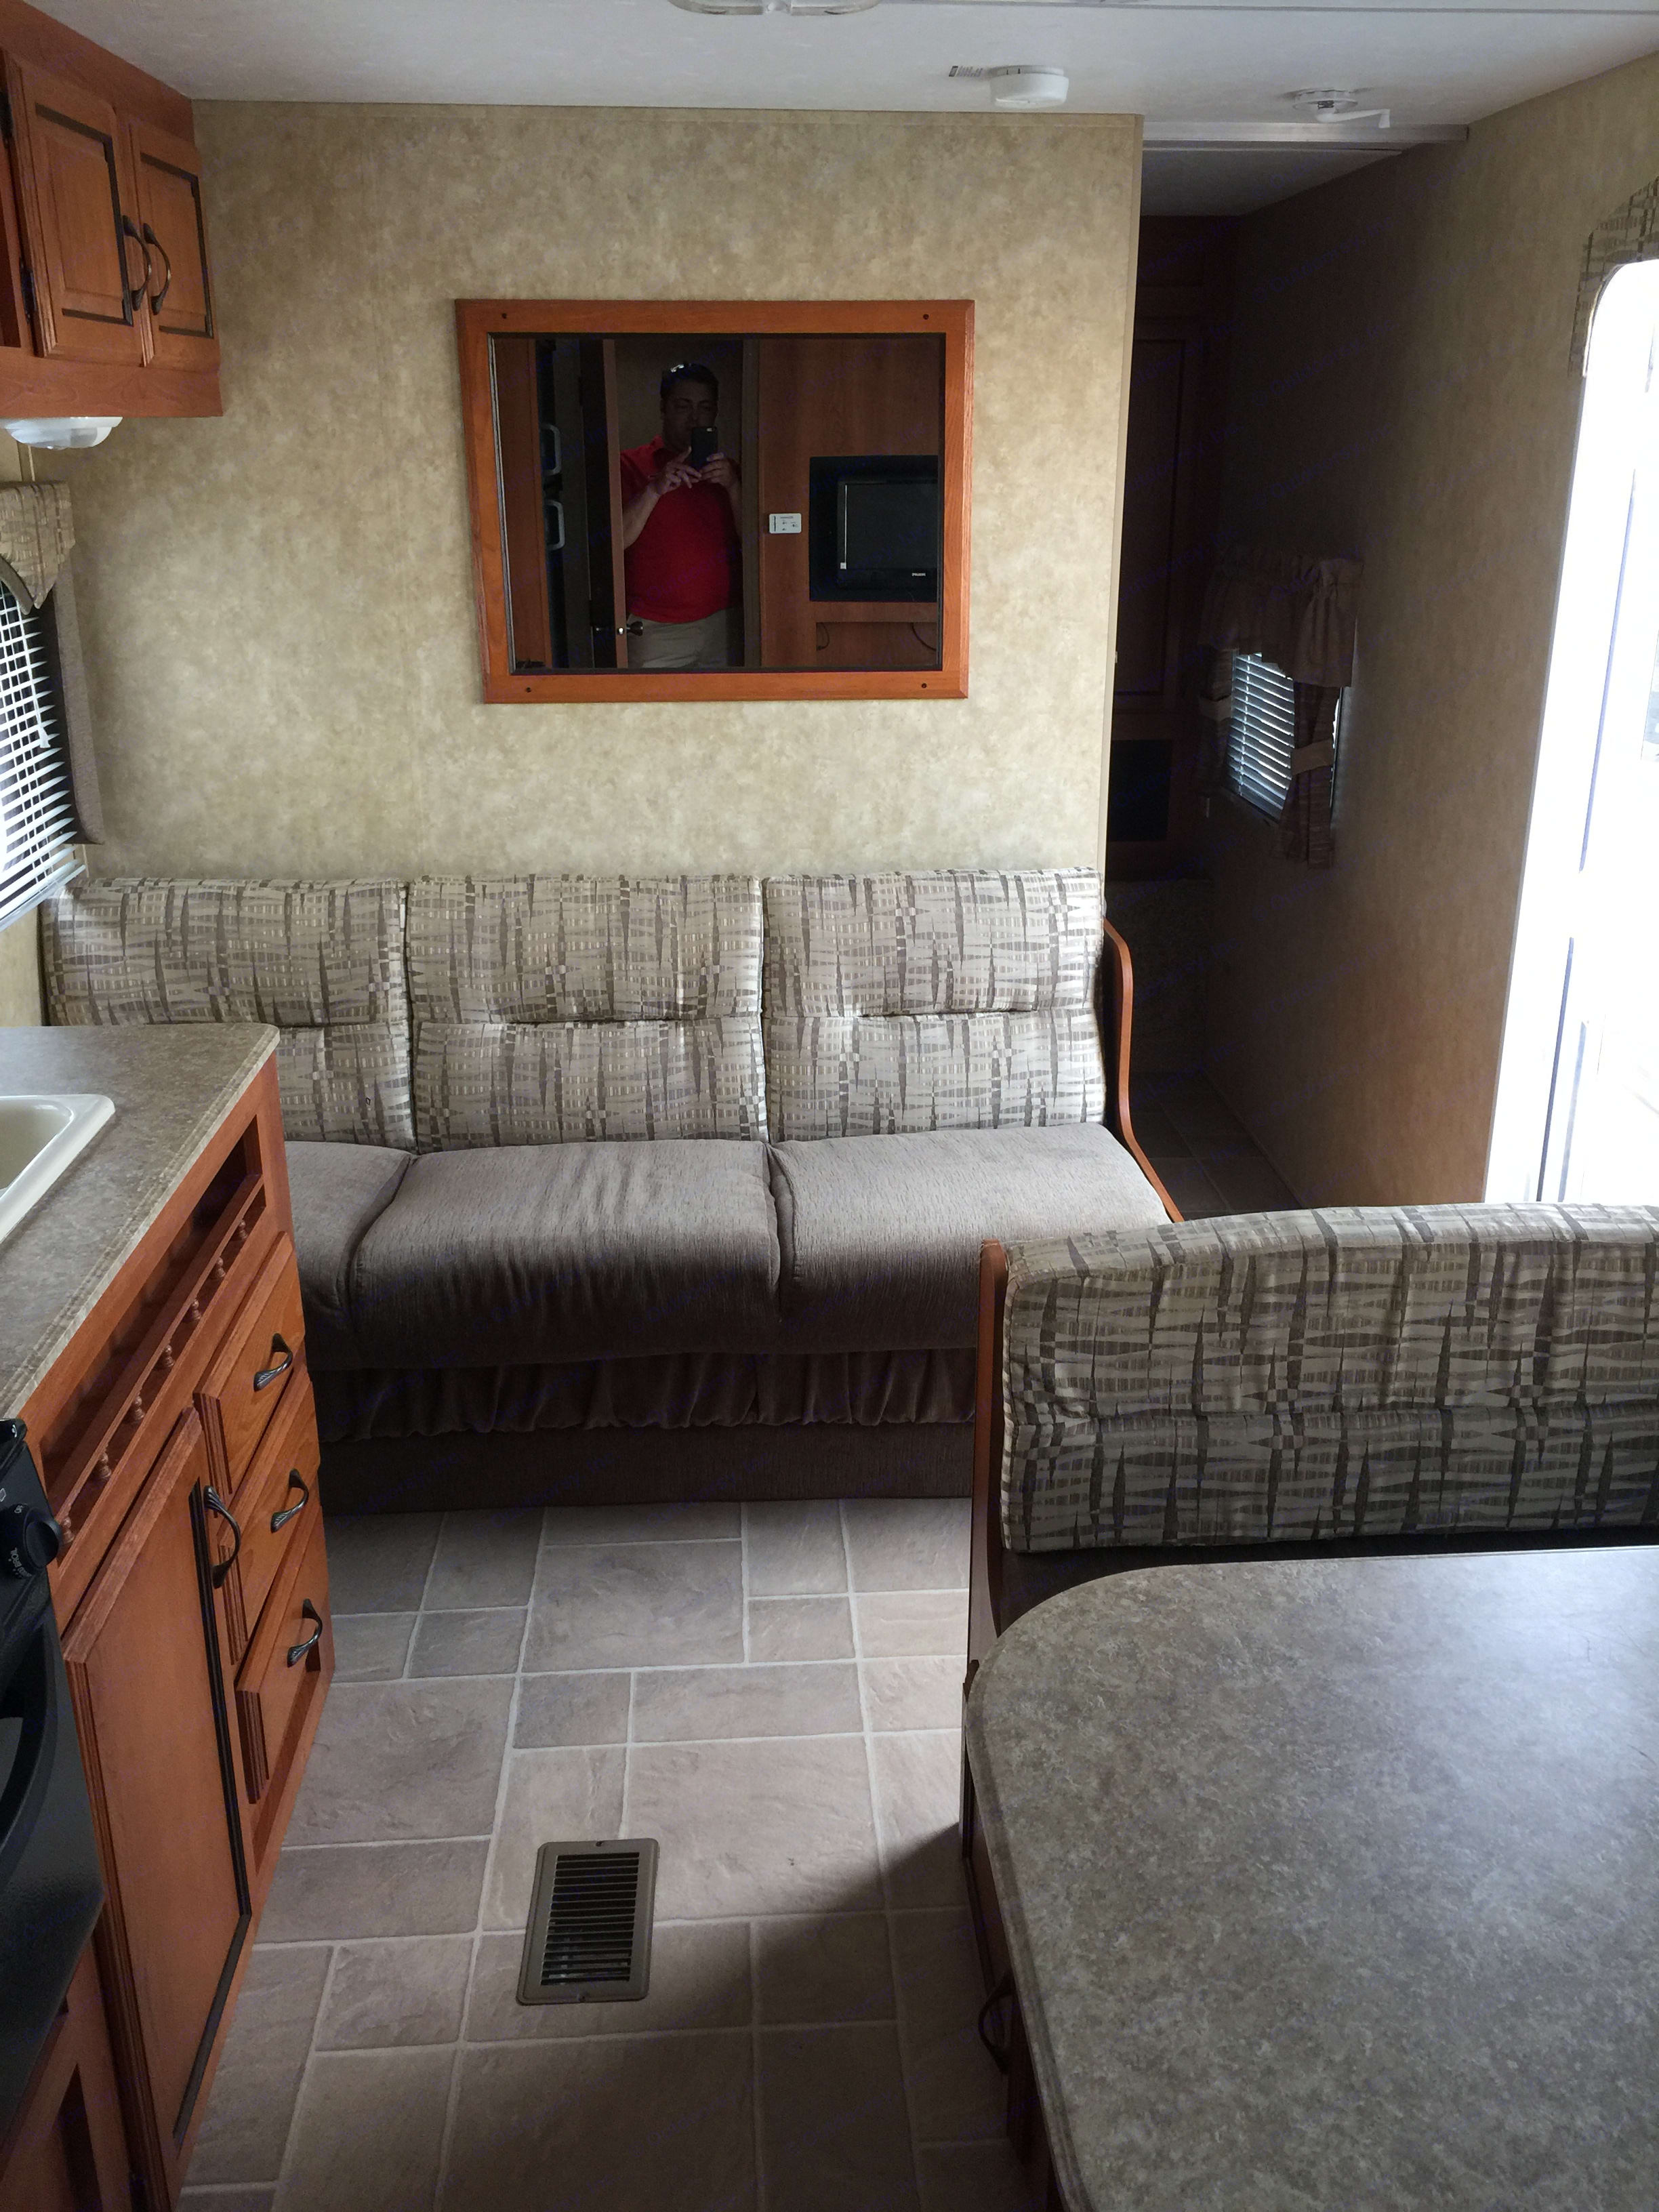 Couch folds into a full size bed. Coachmen Catalina 2010